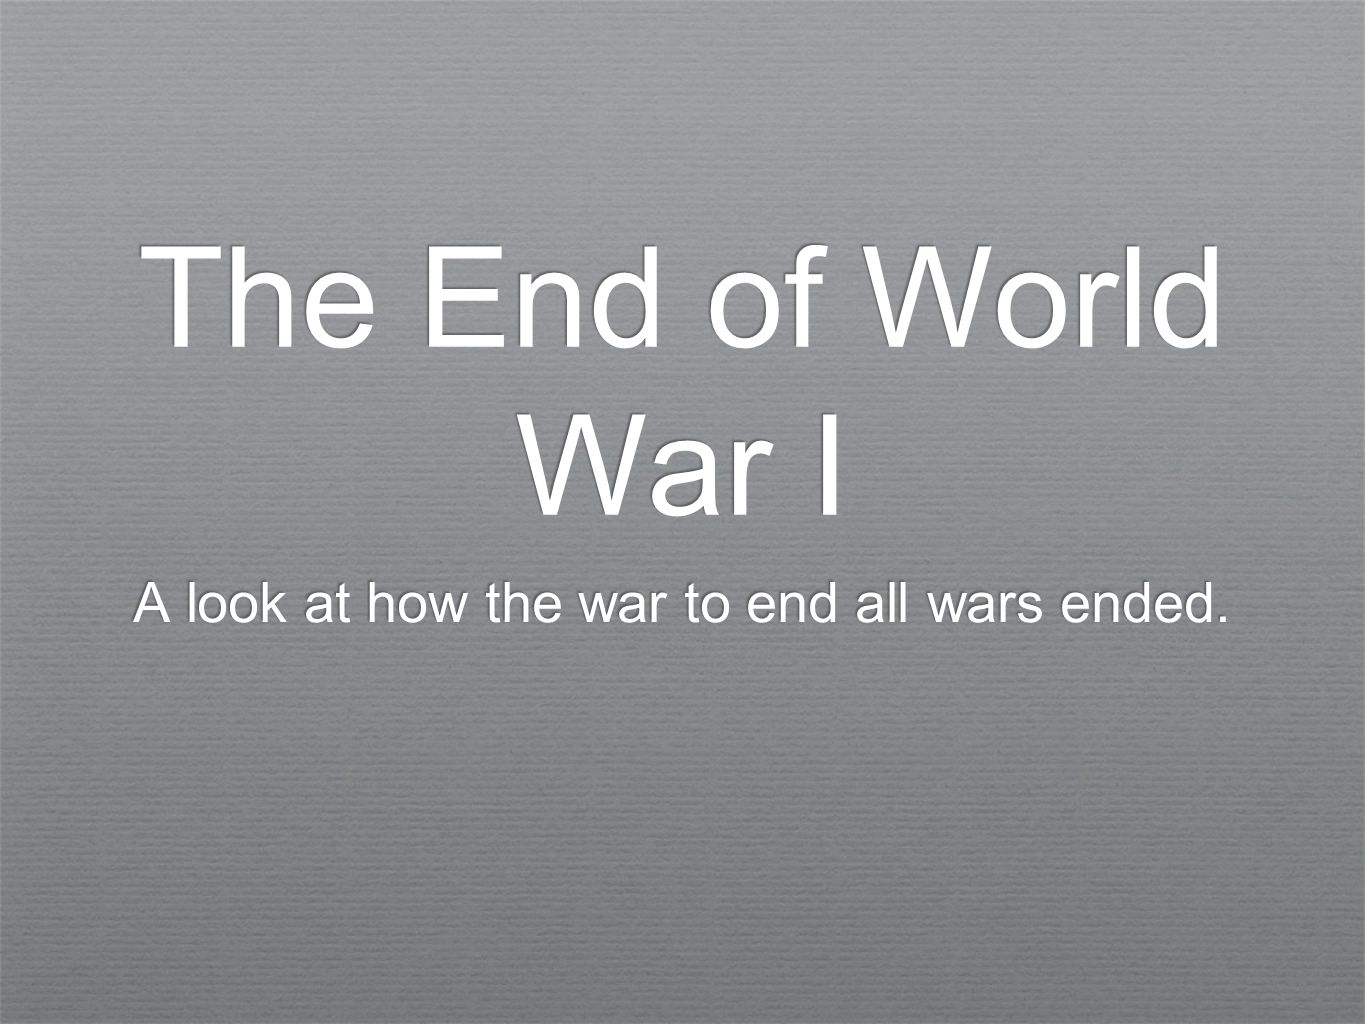 Objective ✦ By the end of the lesson, SWBAT describe how World War I ended.